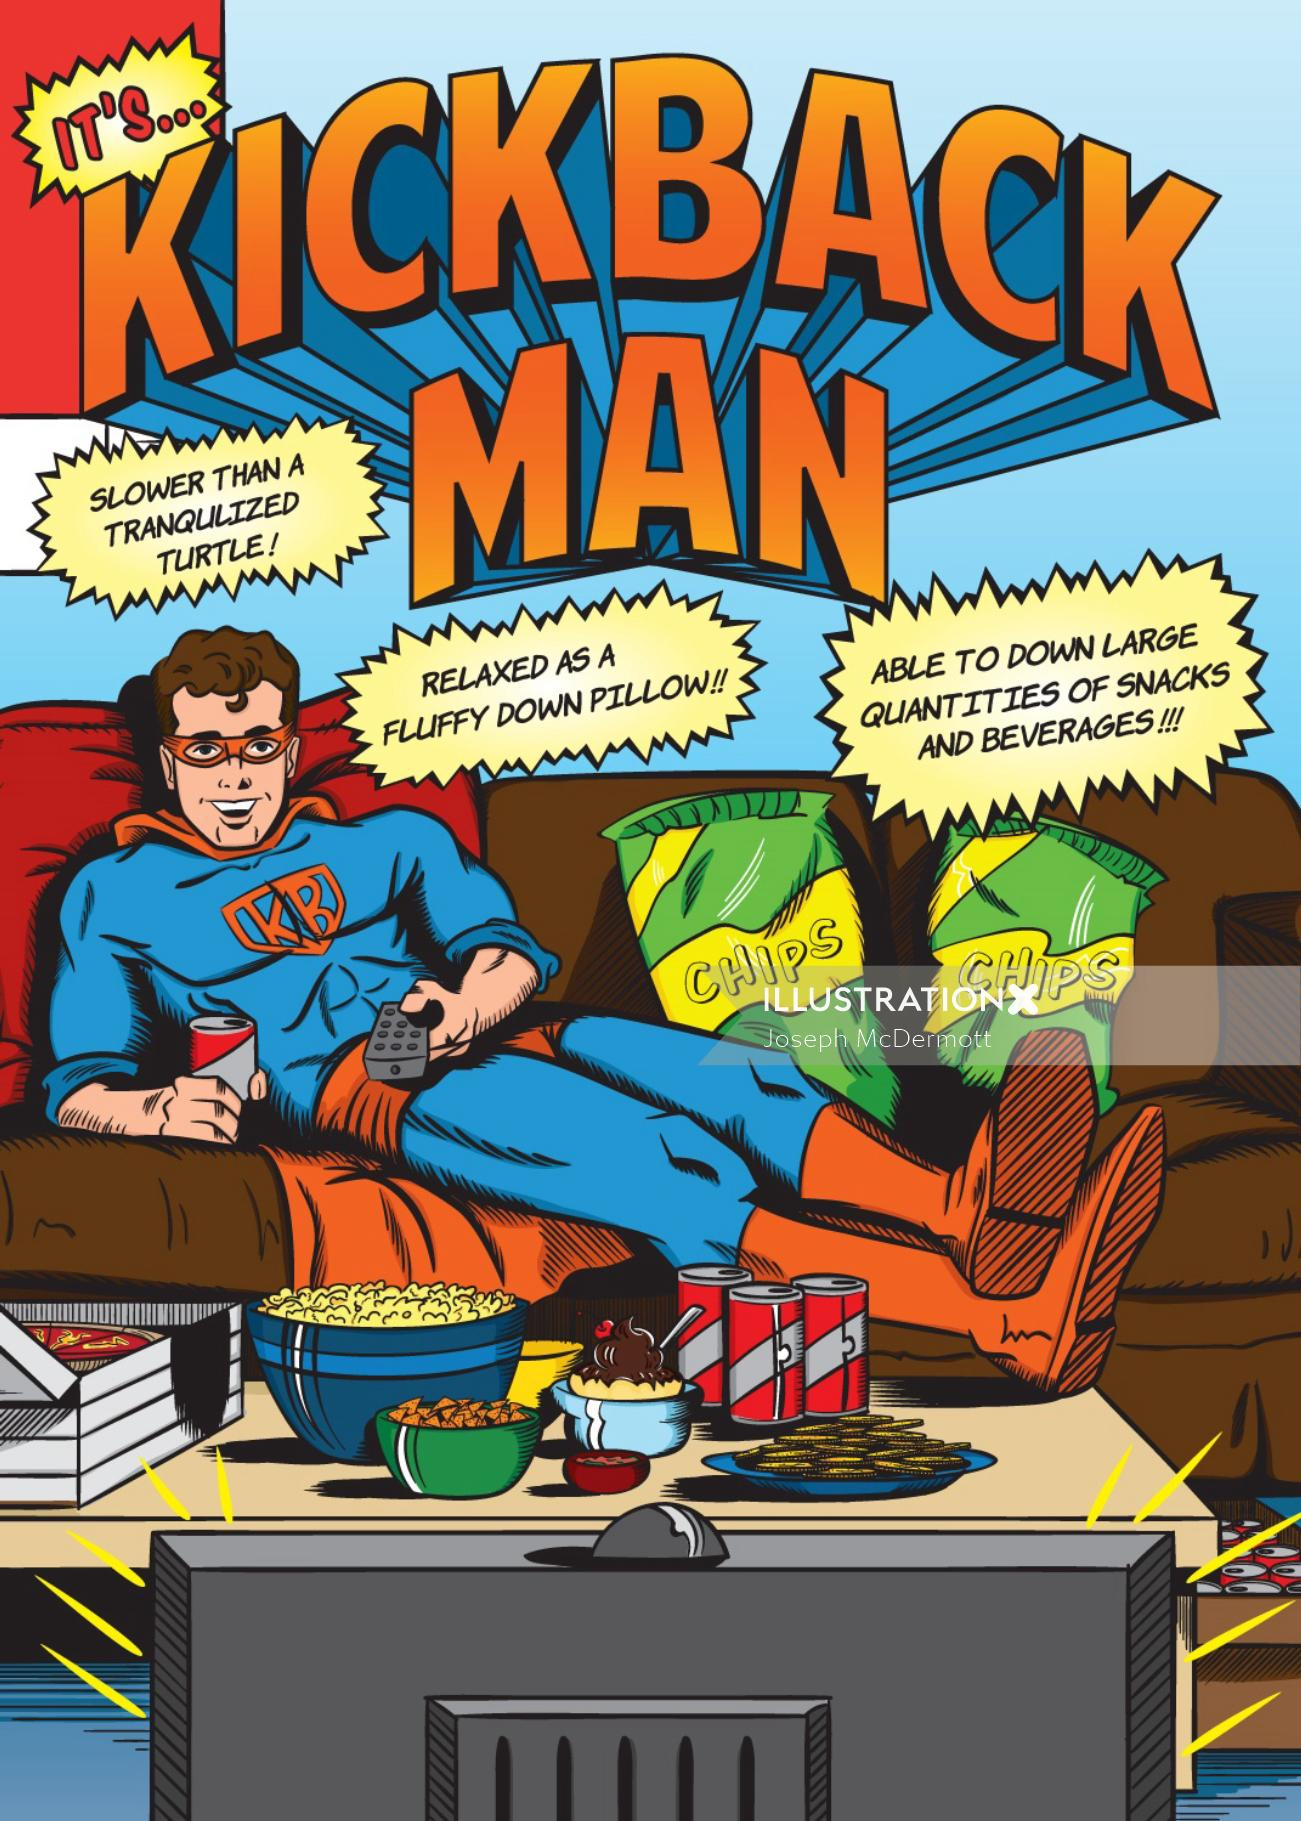 Kickback man comic artwork